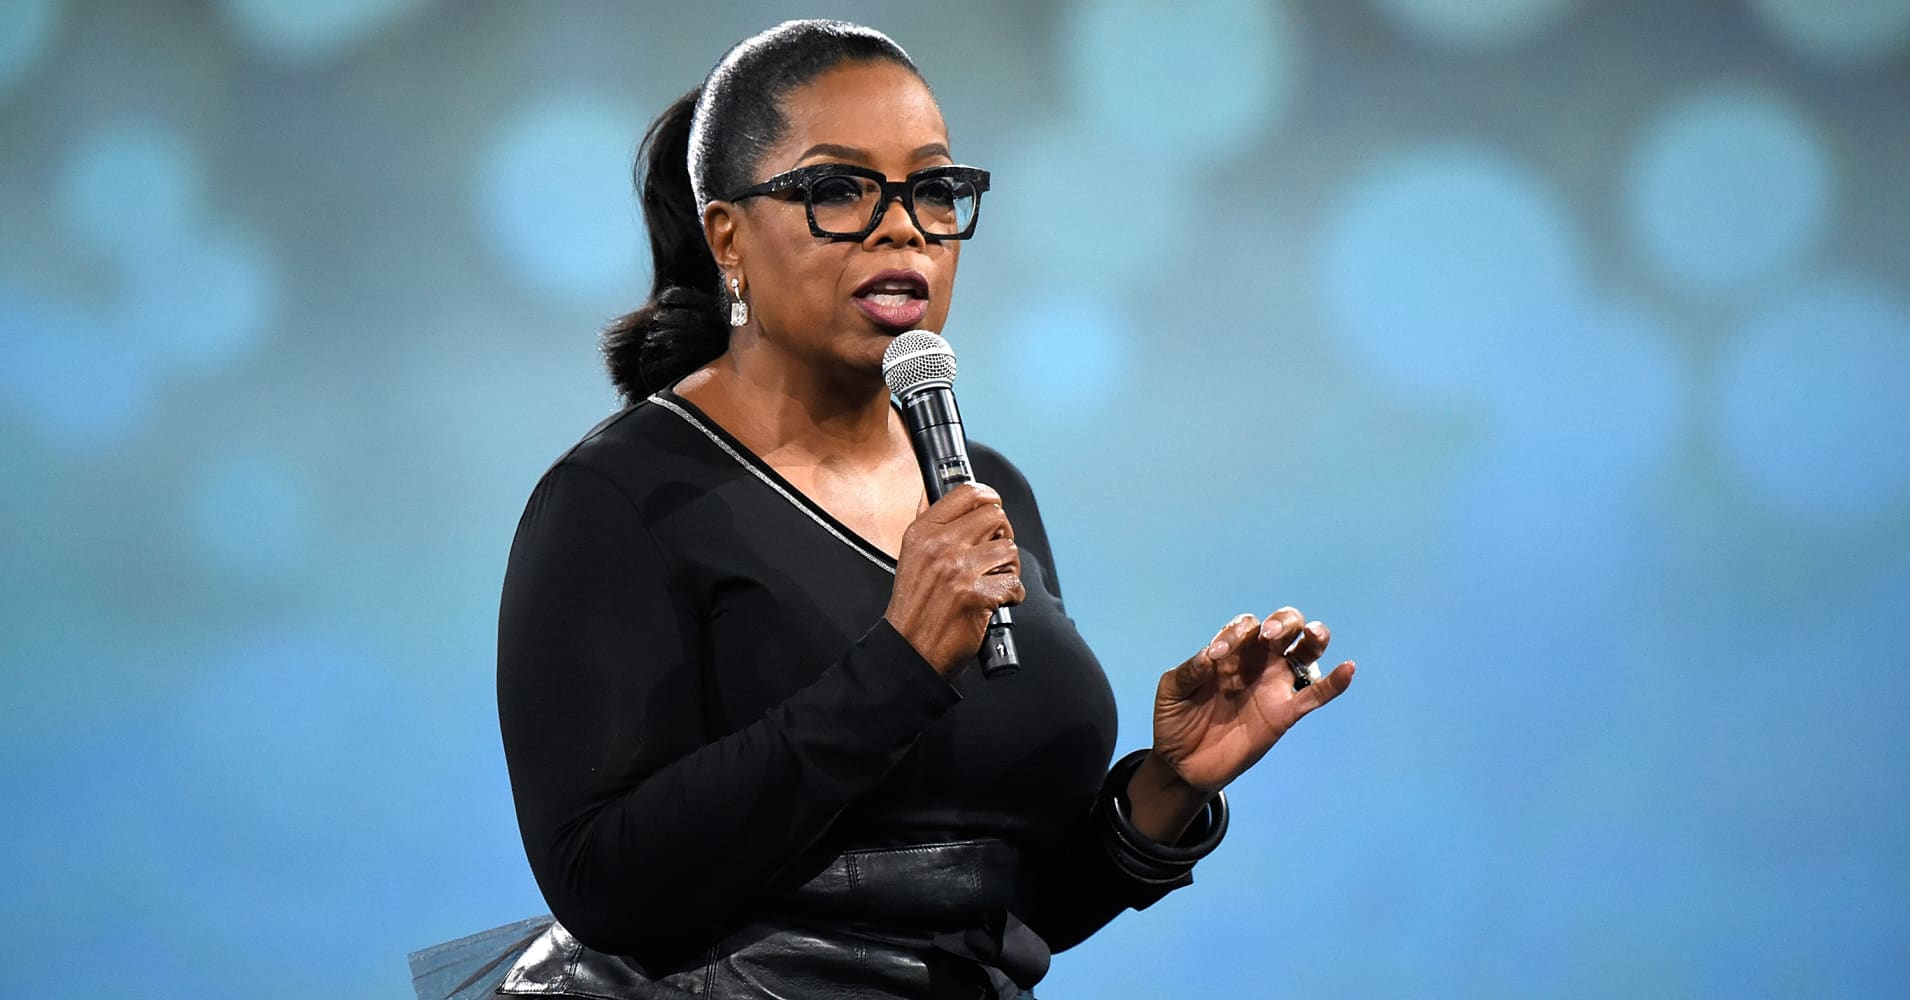 Oprah Winfrey speaks on stage during The Robin Hood Foundation's 2018 benefit at Jacob Javitz Center on May 14, 2018 in New York City.